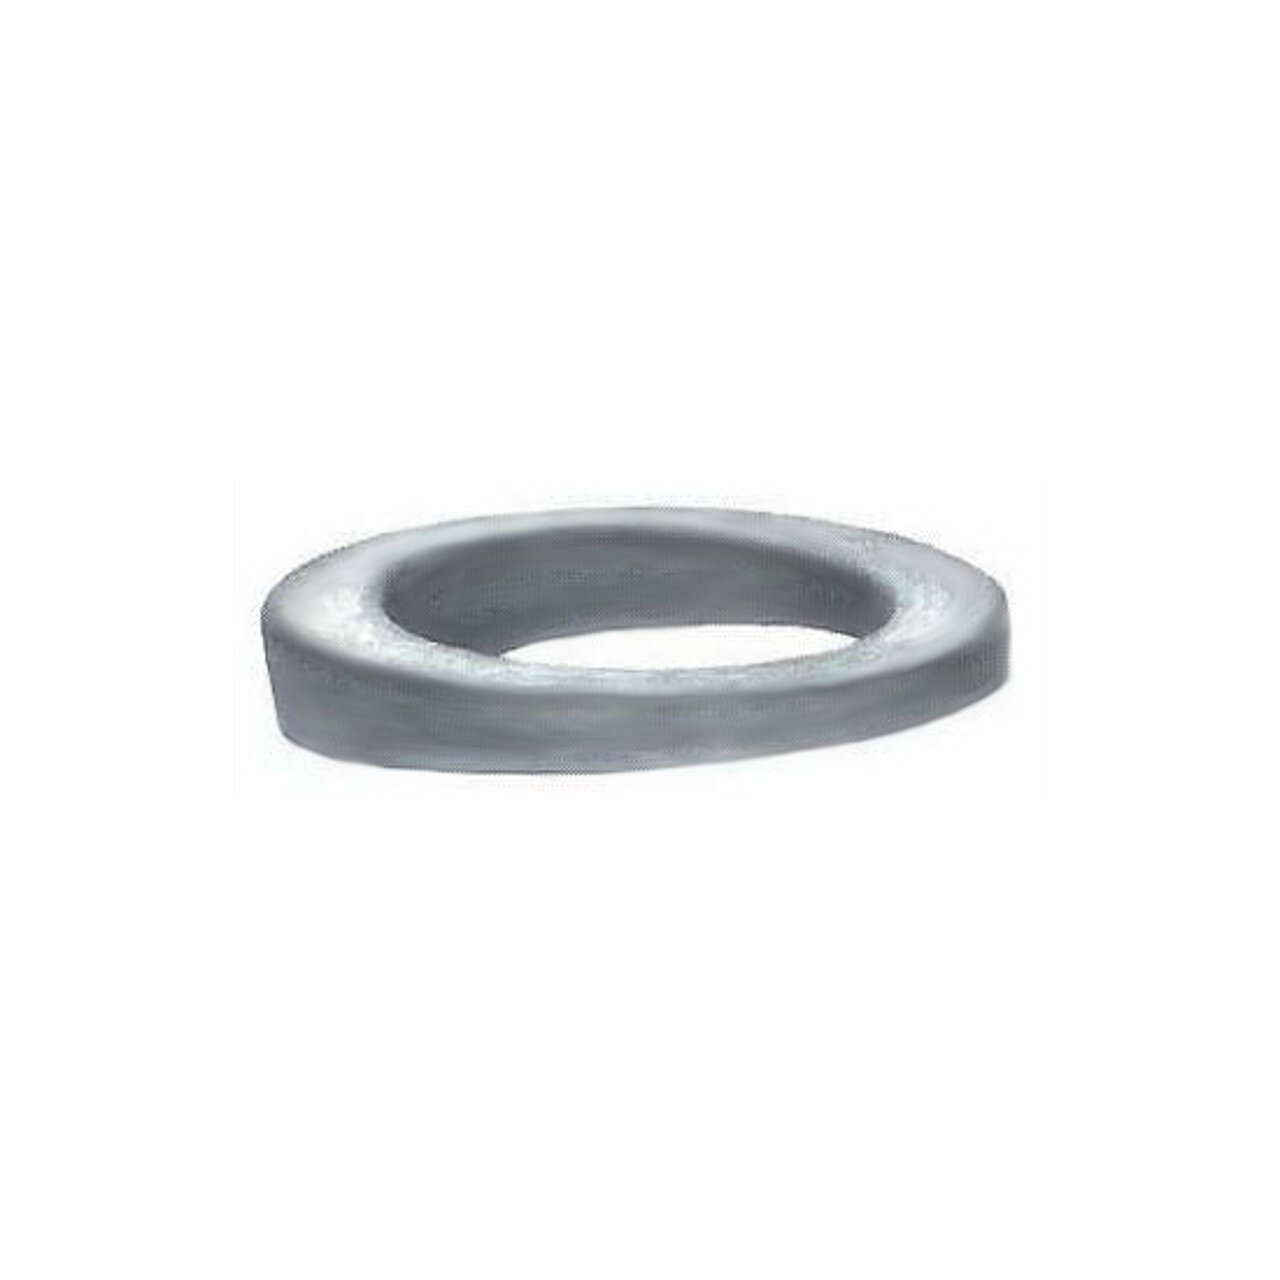 Pasco 2080 1-Inch by 3/4-Inch Galvanized Spud Friction Ring